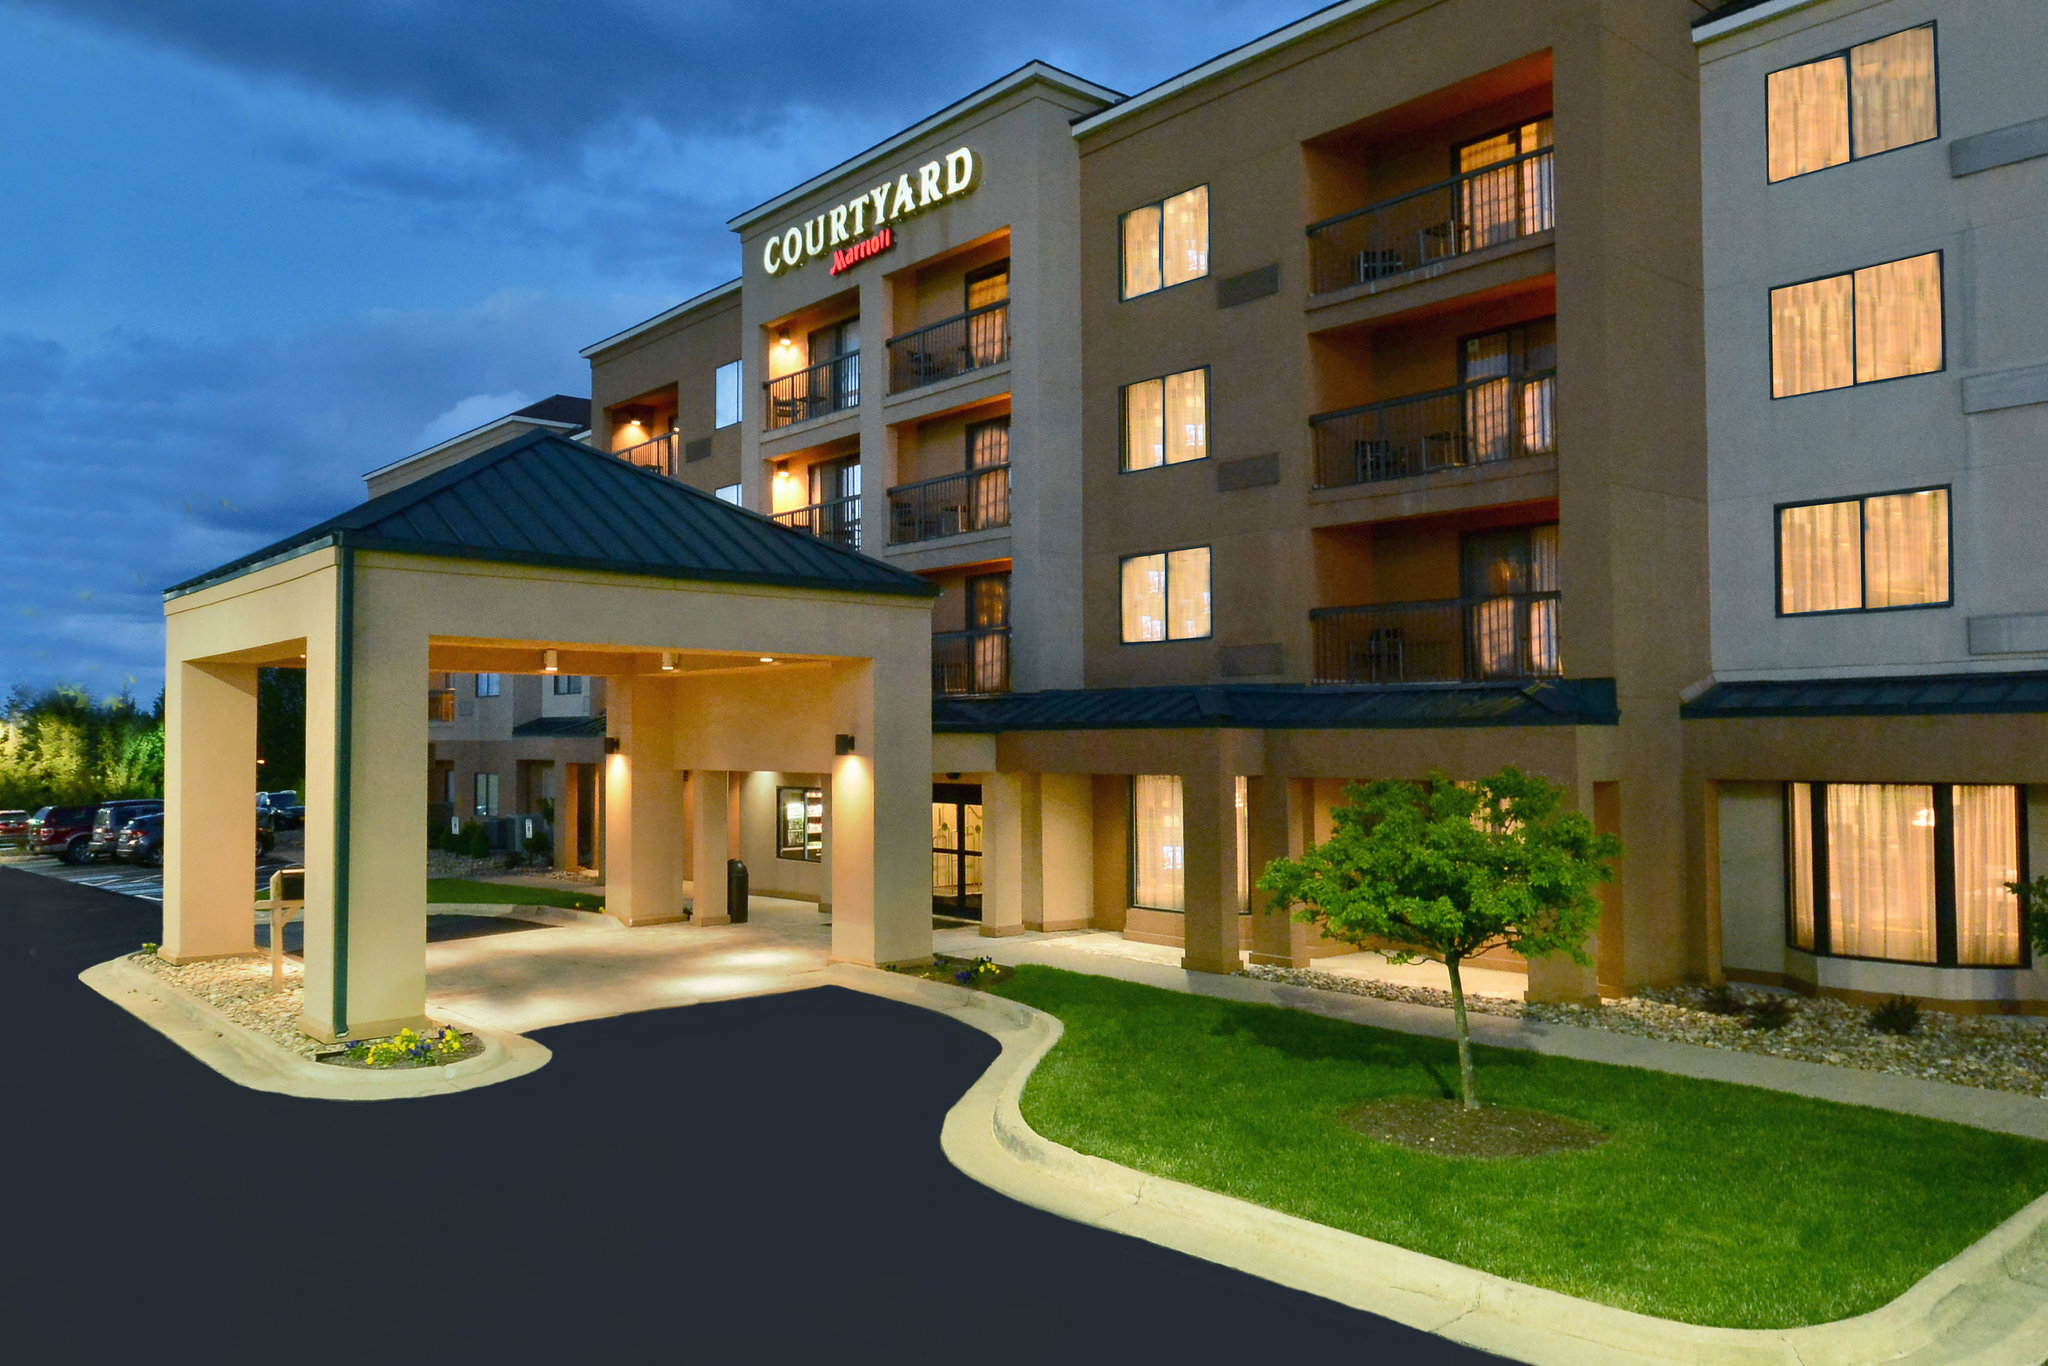 Courtyard Beckley Marriott